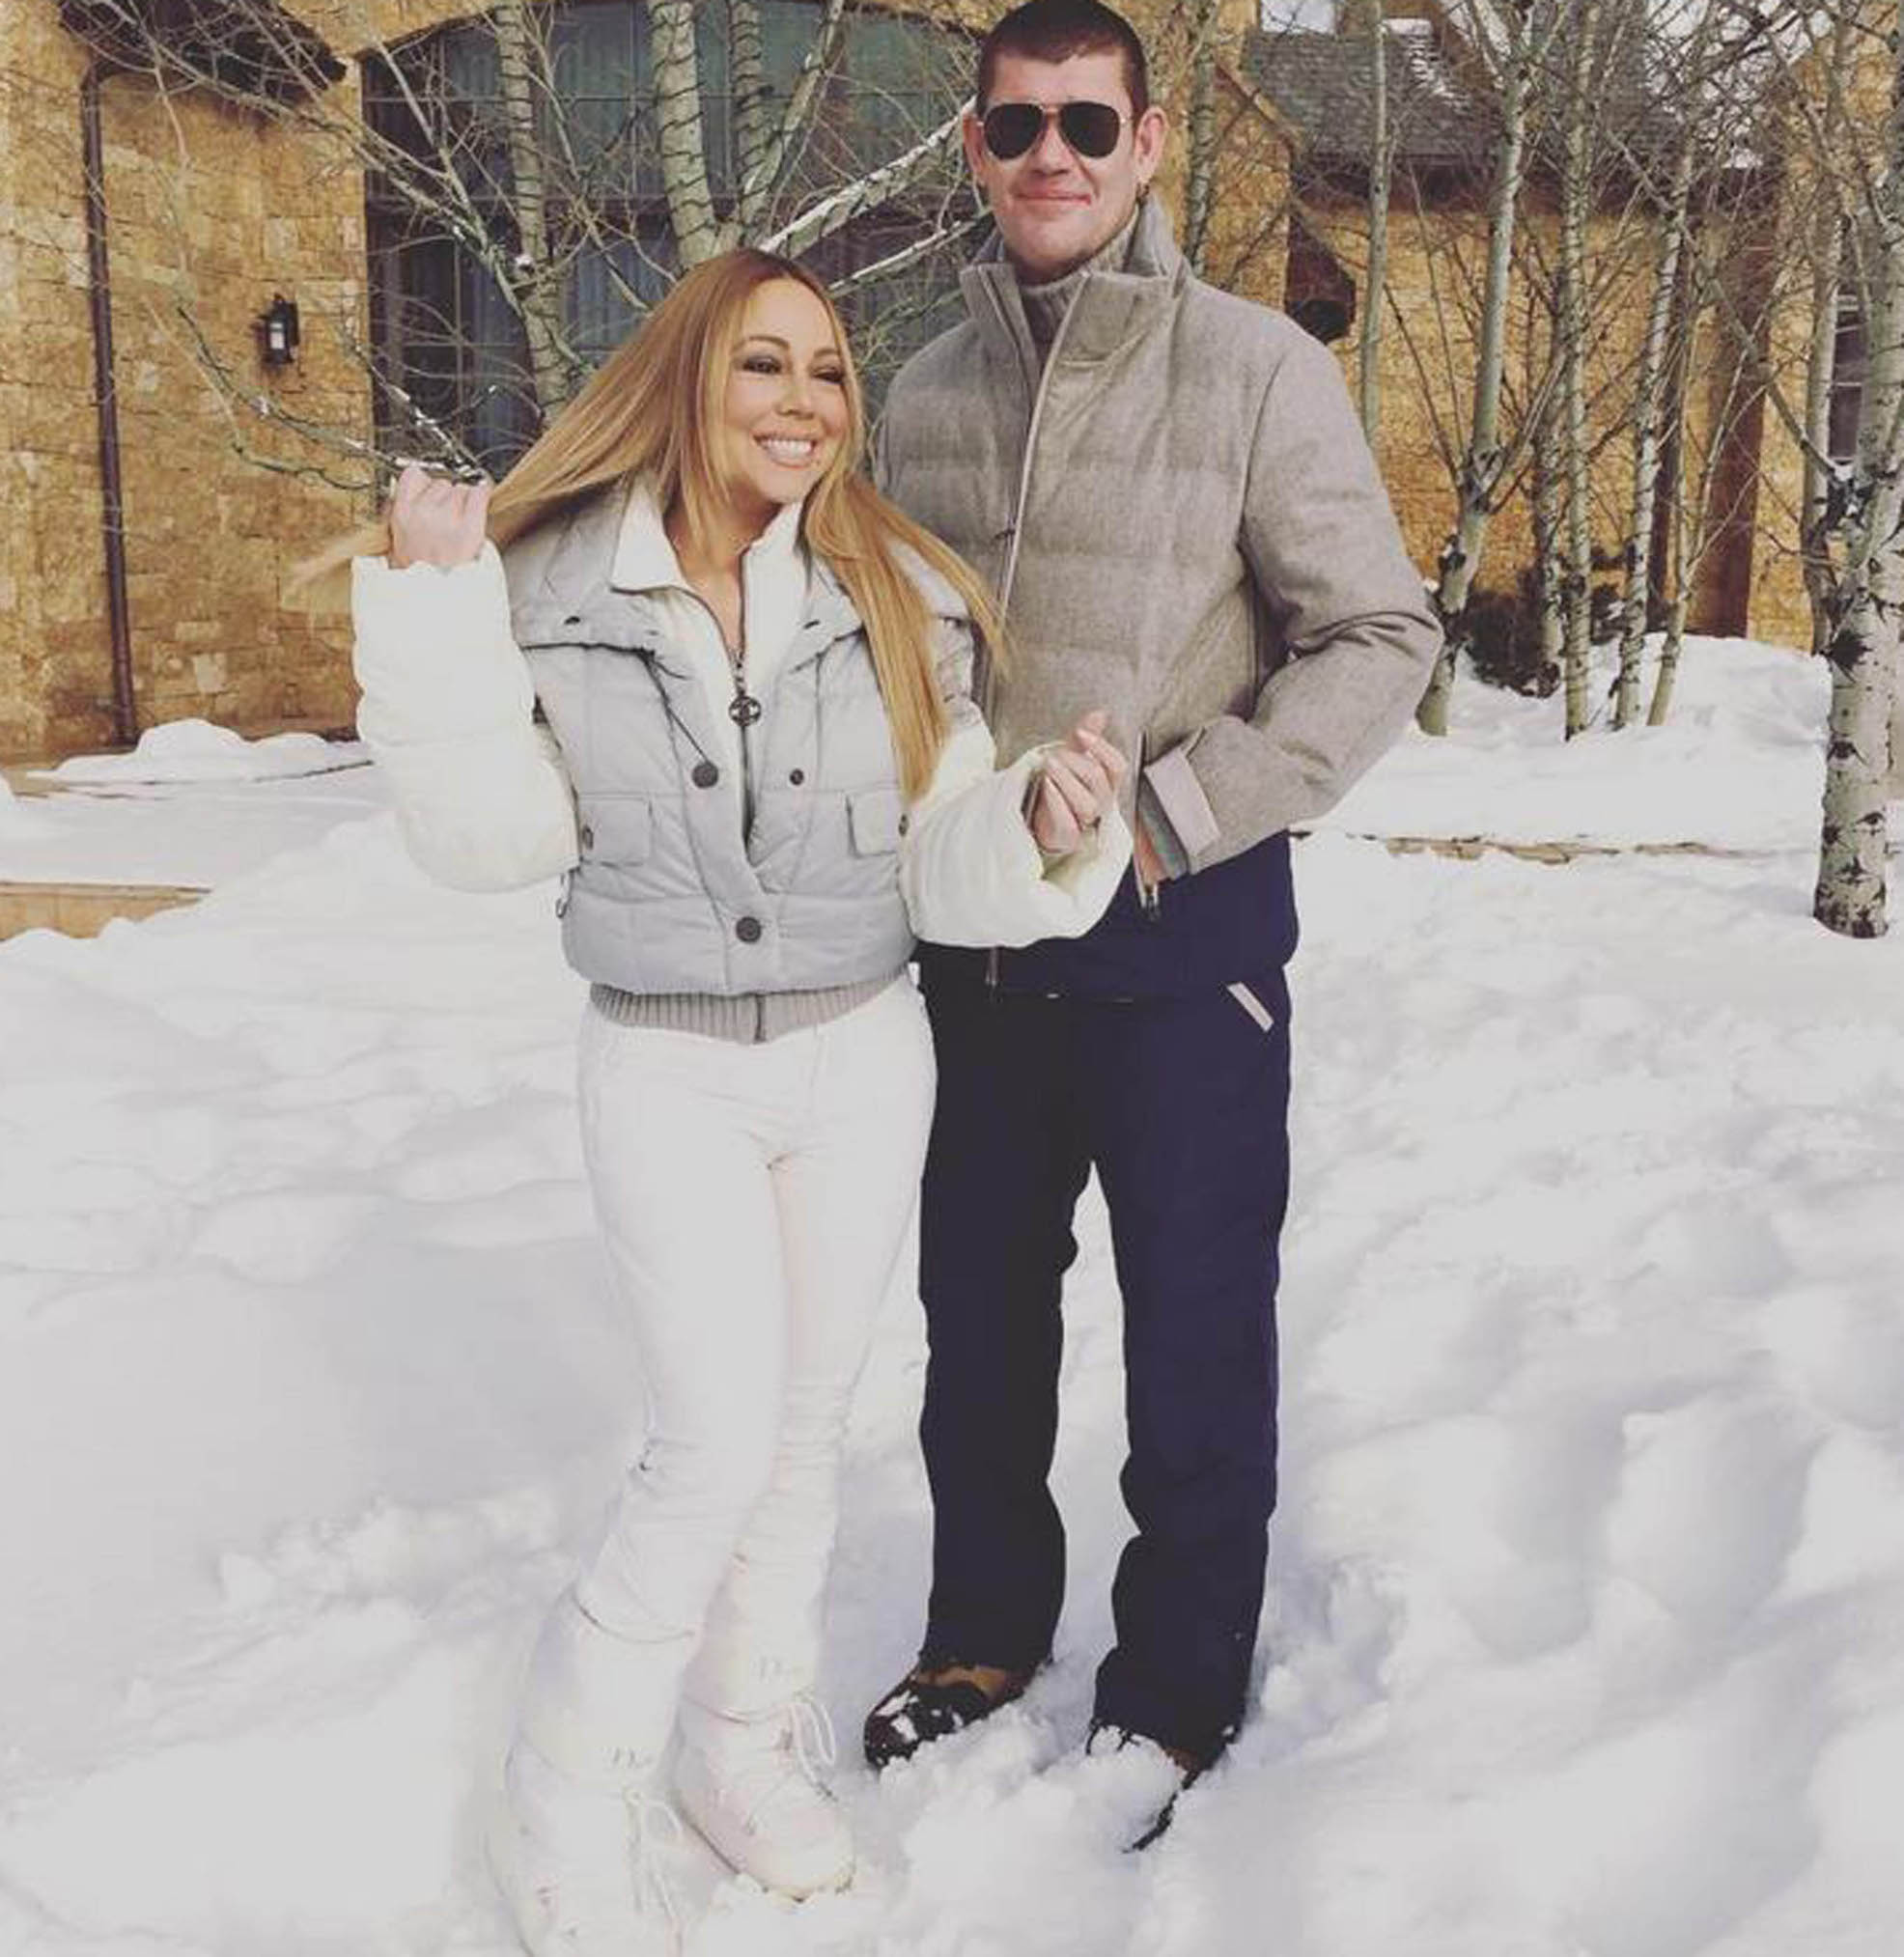 23-12-2015  Celebrity Selfies   Pictured: Mariah Carey and James Packer,Image: 269900655, License: Rights-managed, Restrictions: , Model Release: no, Credit line: PLANET PHOTOS / Planet / Profimedia